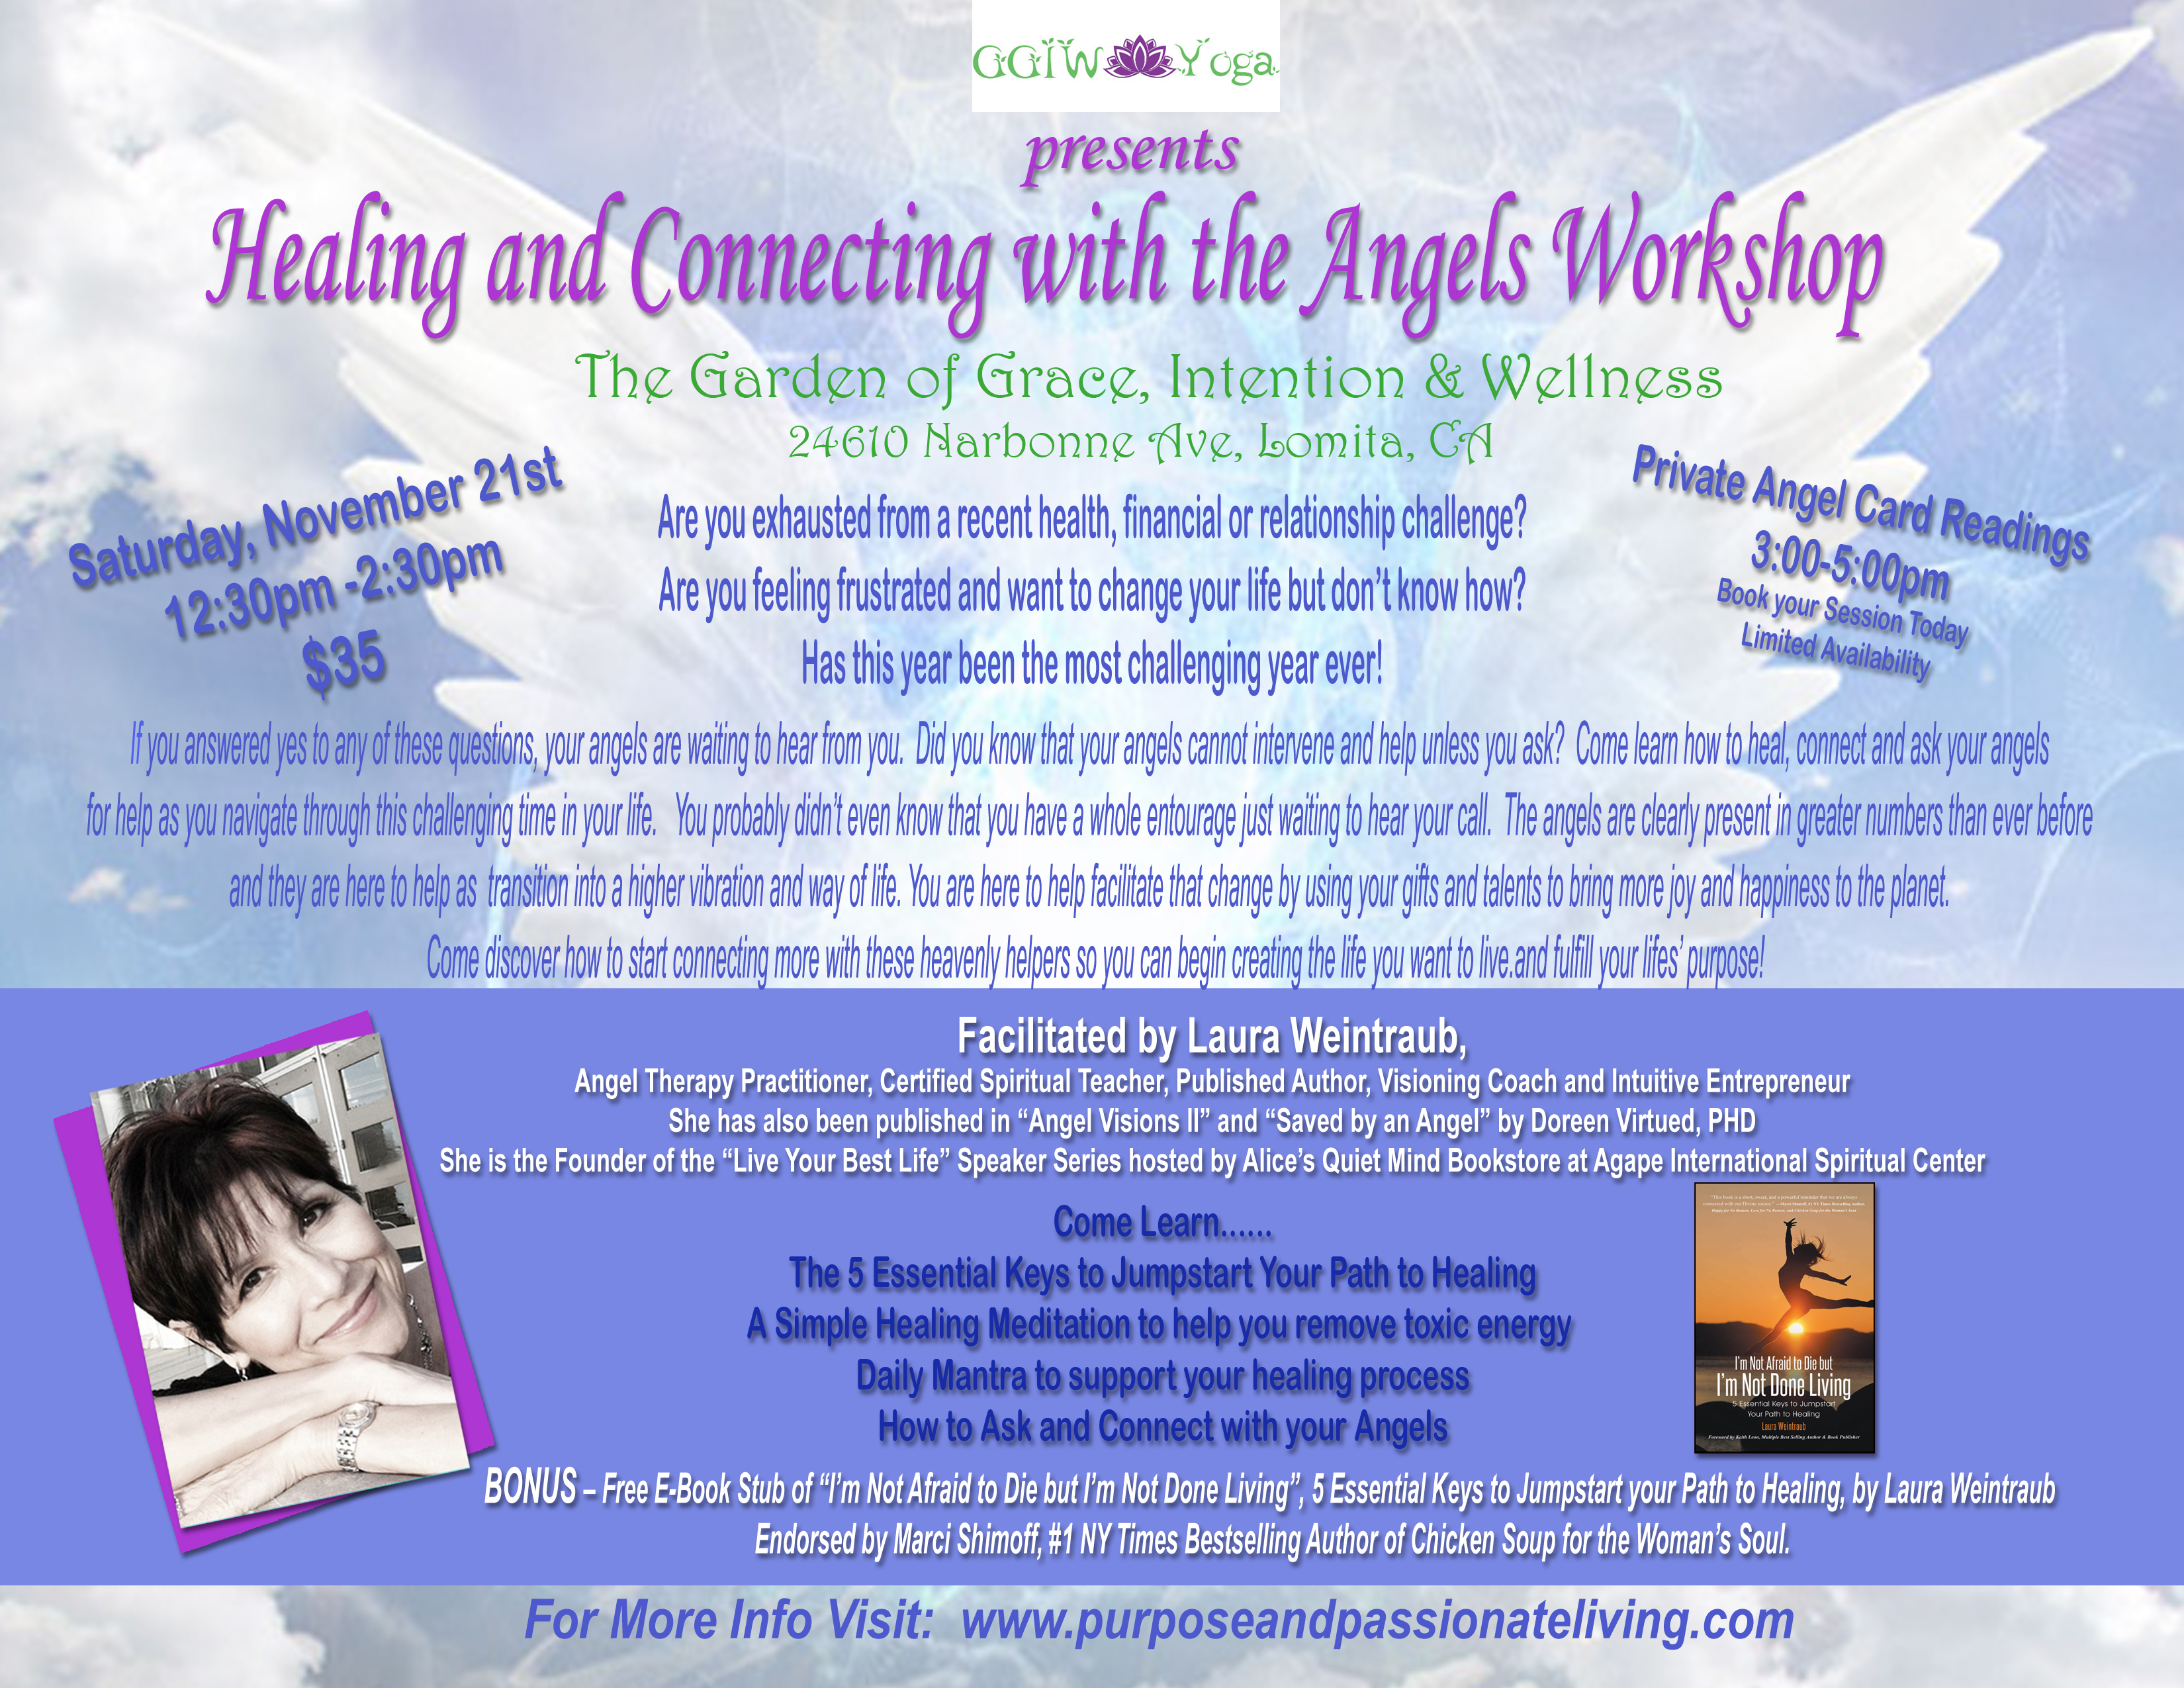 Come join me at the garden of grace wellness and intention for a angel workshop at ggiw fandeluxe Epub